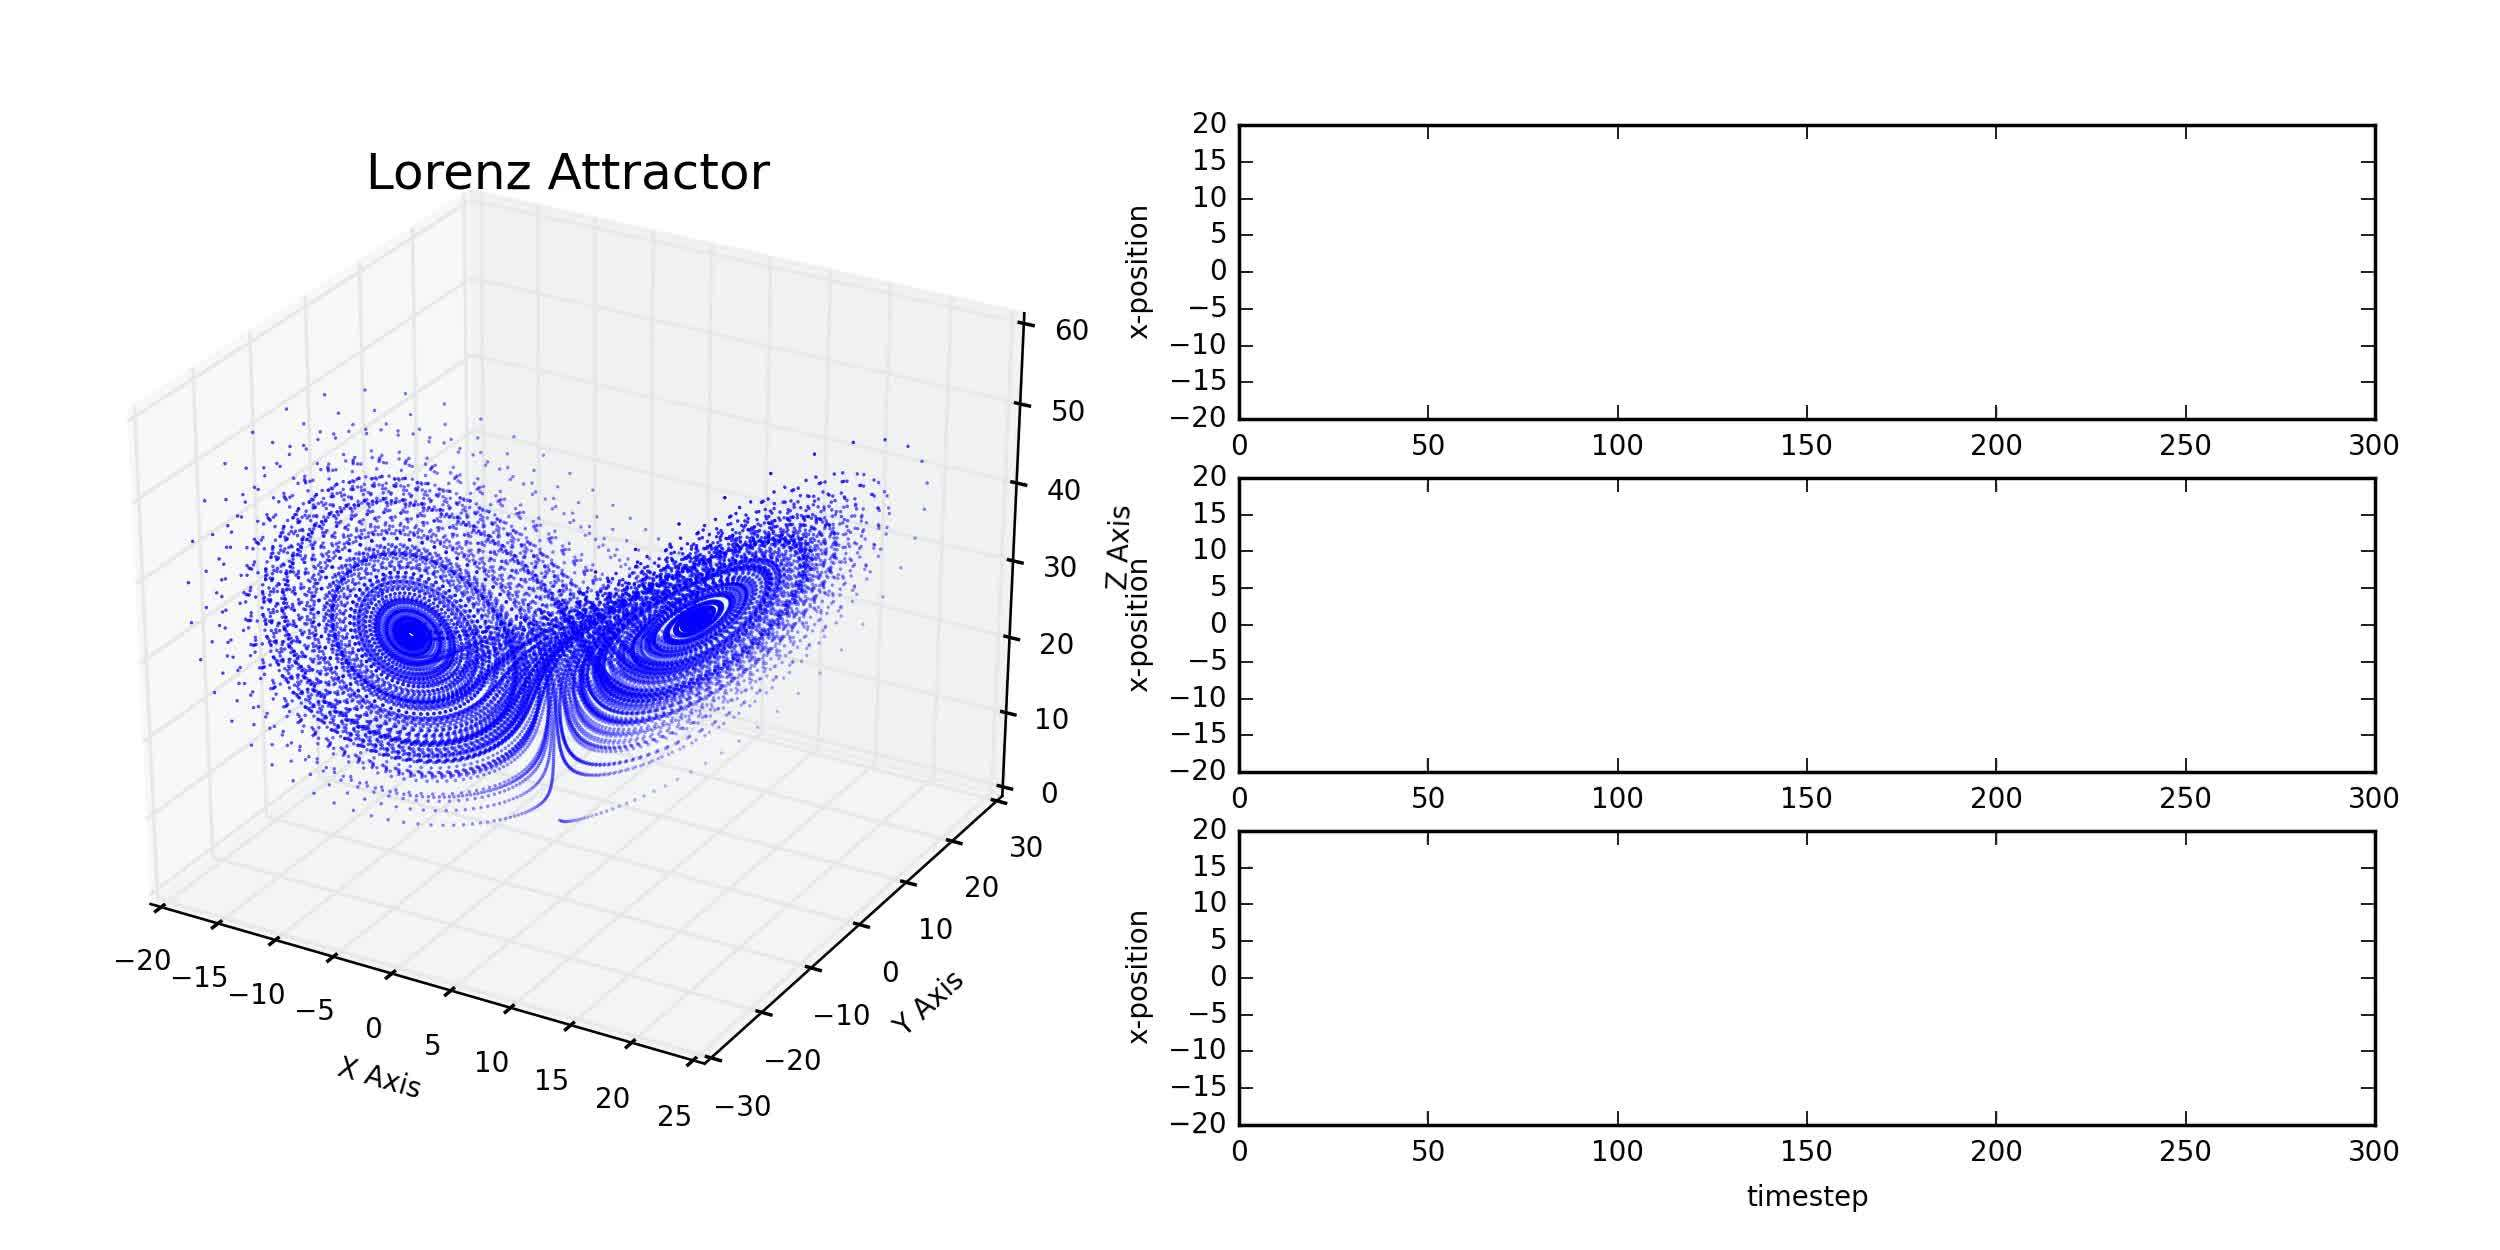 dataisbeautiful, woahdude, Effects of uncertainty in a chaotic system [OC] (reddit) GIFs